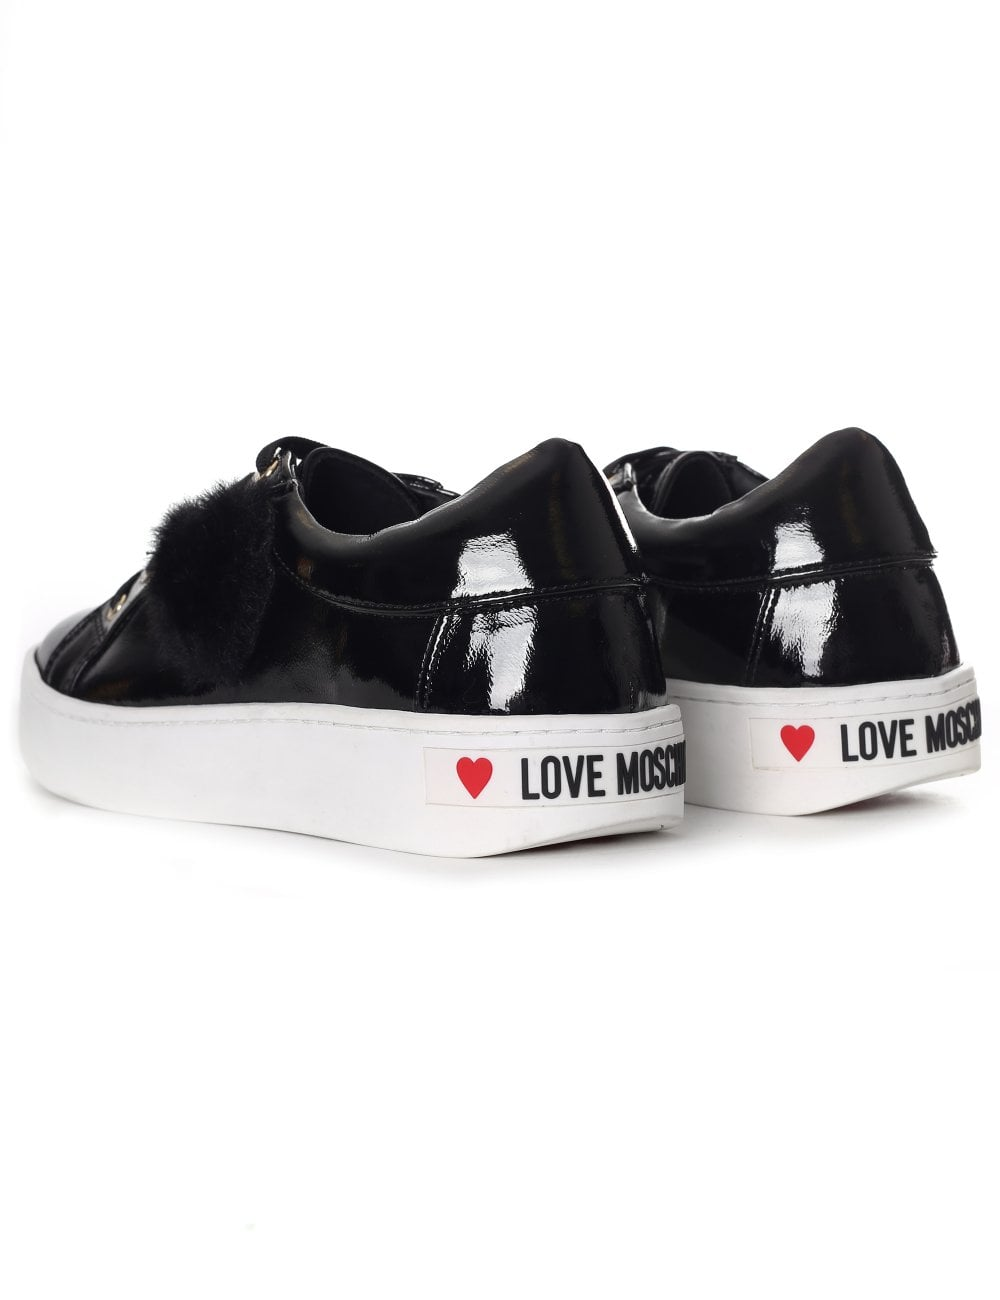 love moschino high top lace up sneakers heart, Moschino